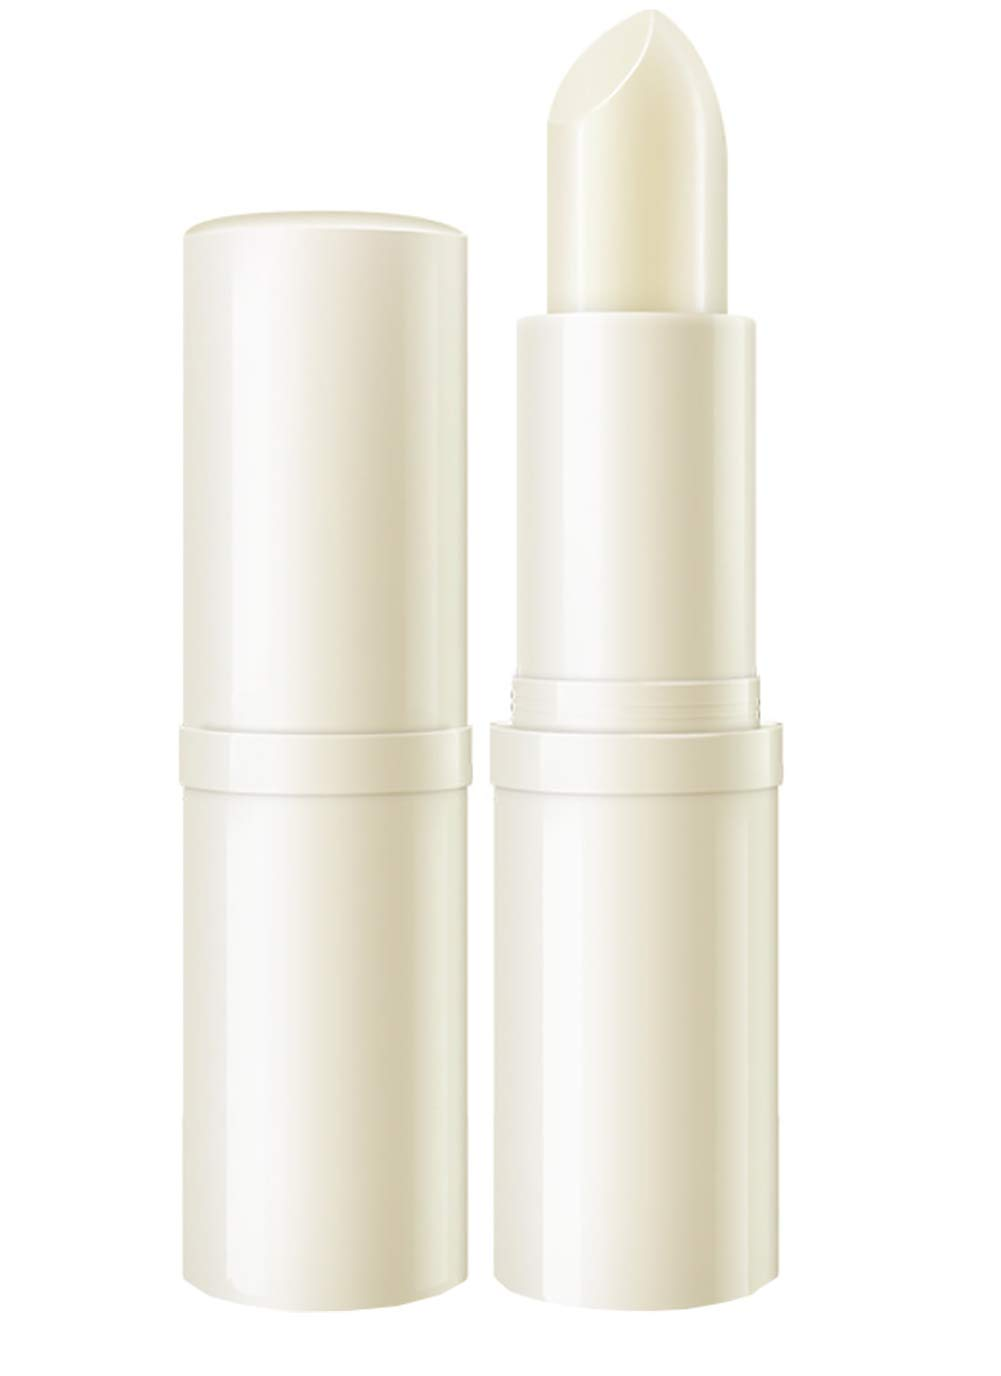 BesYouSel Lip Cream Natural Moisturizing Lip Balm Skin Nourishing Lip Butter Plant Honey Lip Balm Moisturizing Anti-dry Lip Balm,Pack of 2